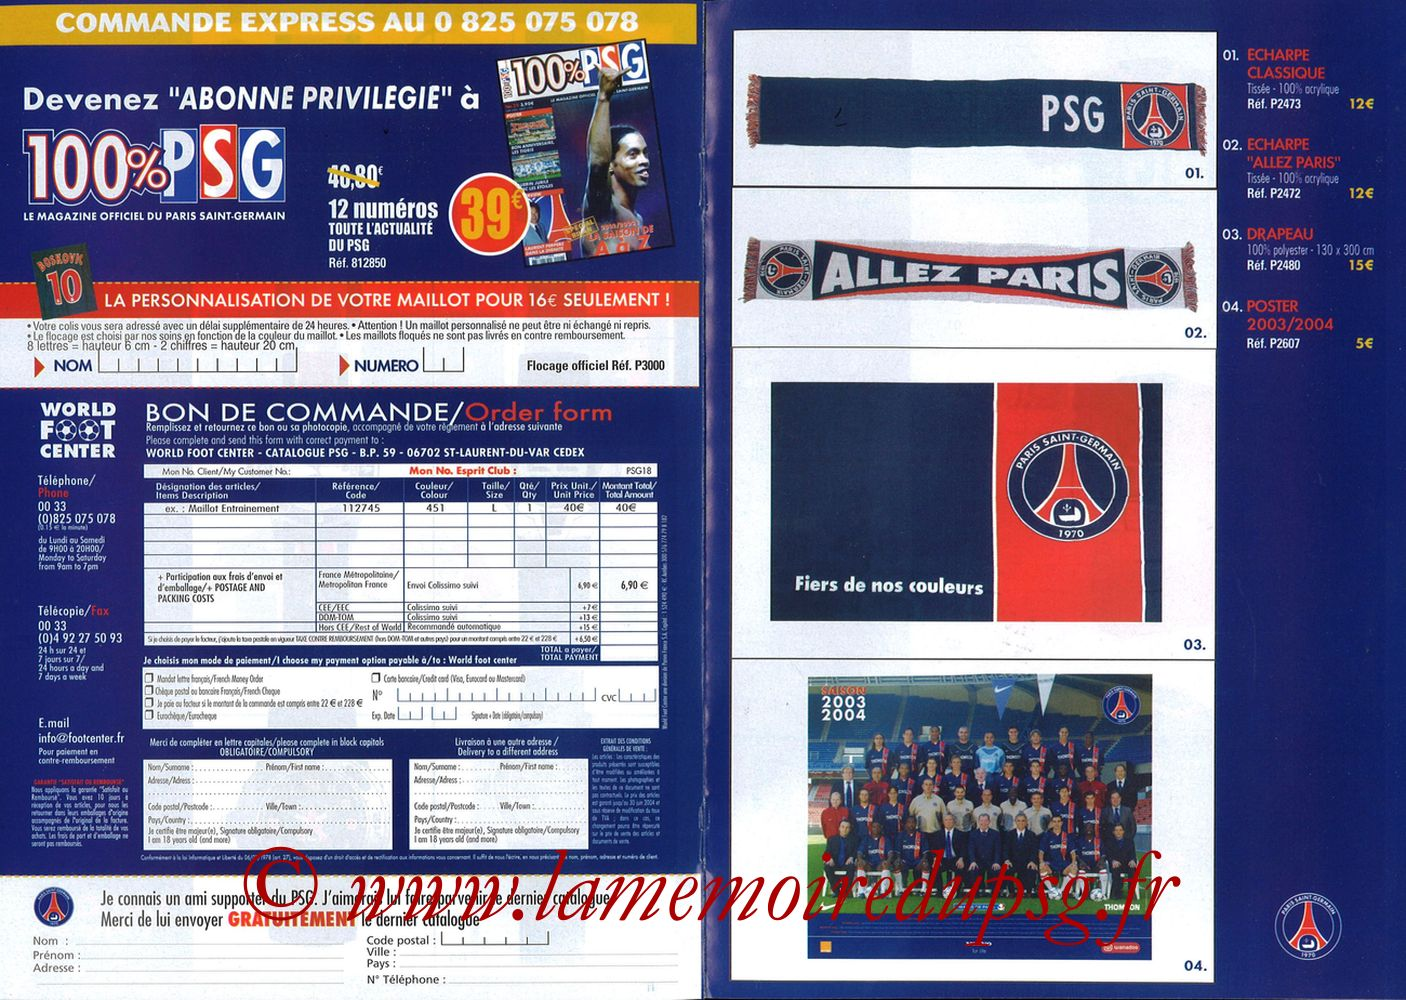 Catalogue PSG - 2003-04 - Pages 06 et 07